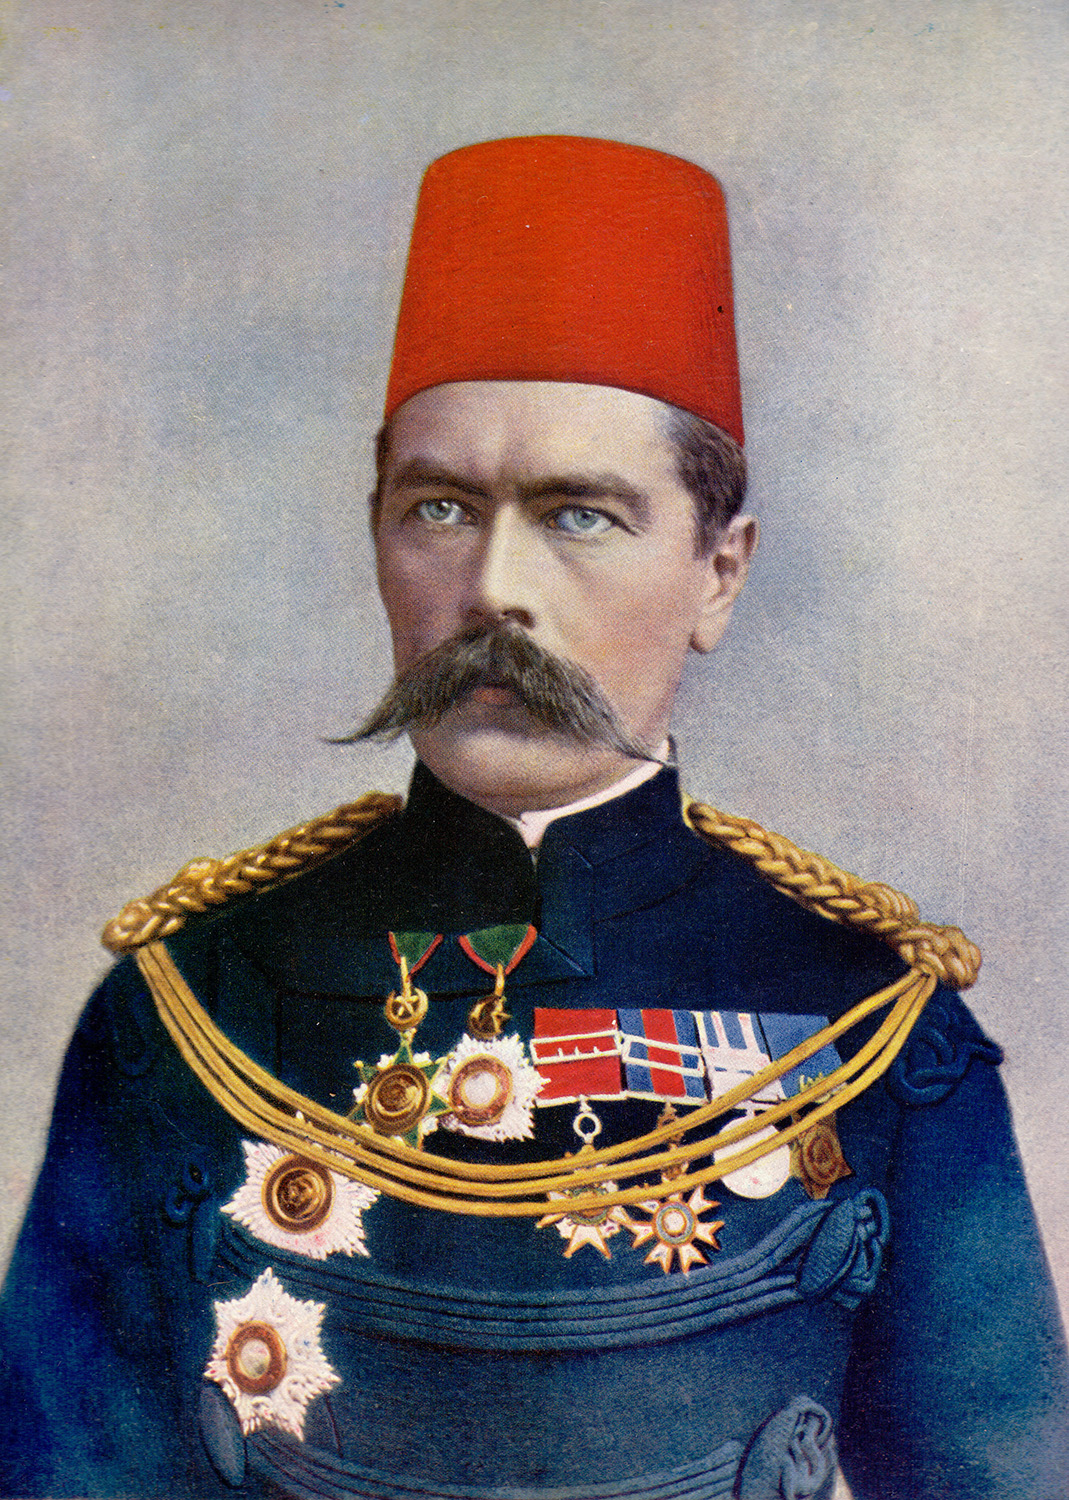 Major-General Horatio Herbert Kitchener, the Sirdar of the Egyptian Army, who defeated the Khalifa at the Battle of Omdurman